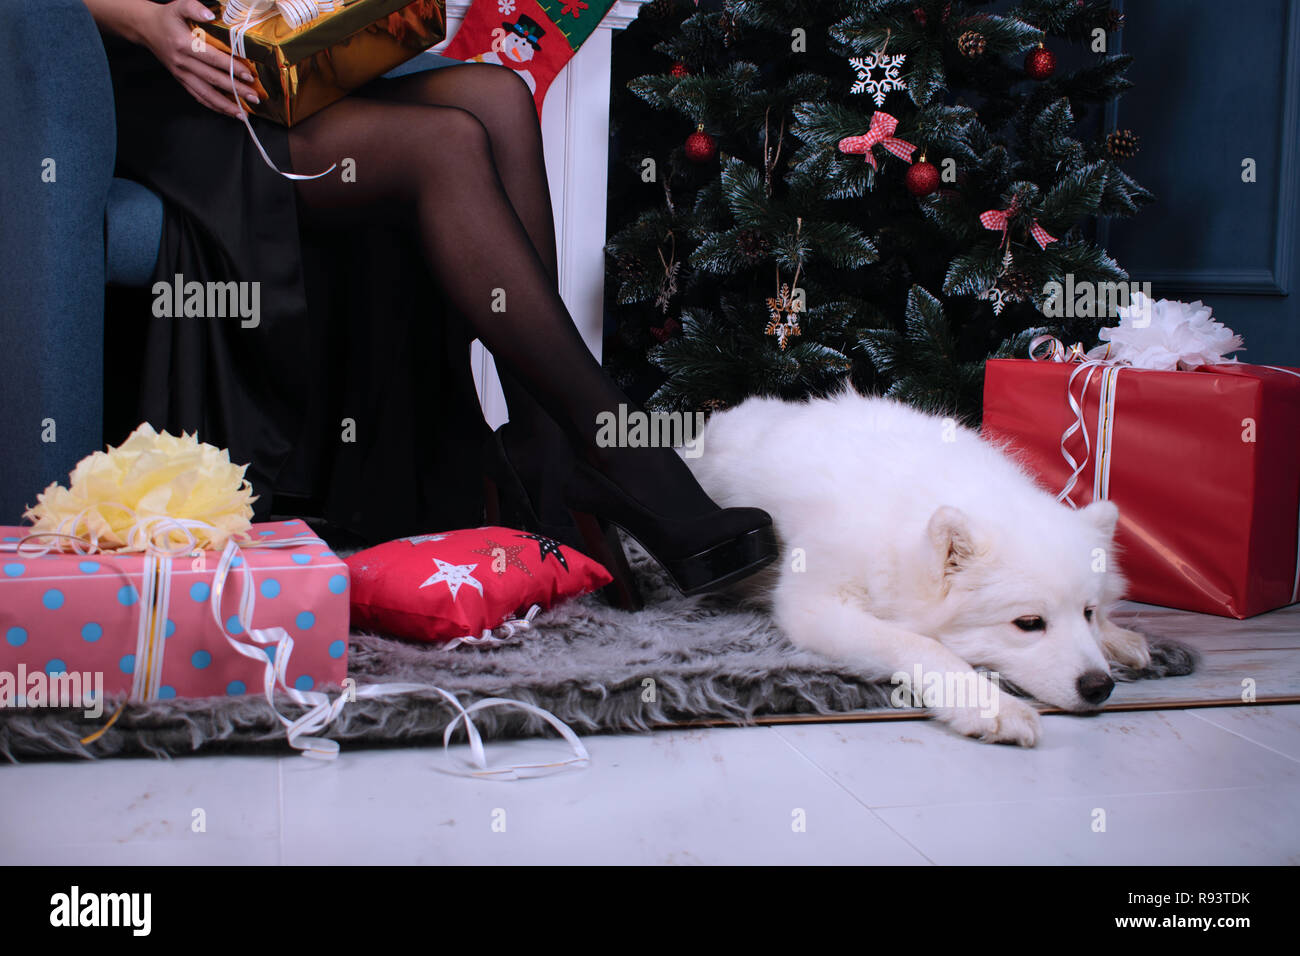 Christmas portrait of a Samoyed dog, a fluffy white dog on the background of beautiful long female legs, gifts, a fireplace, New Year and Christmas